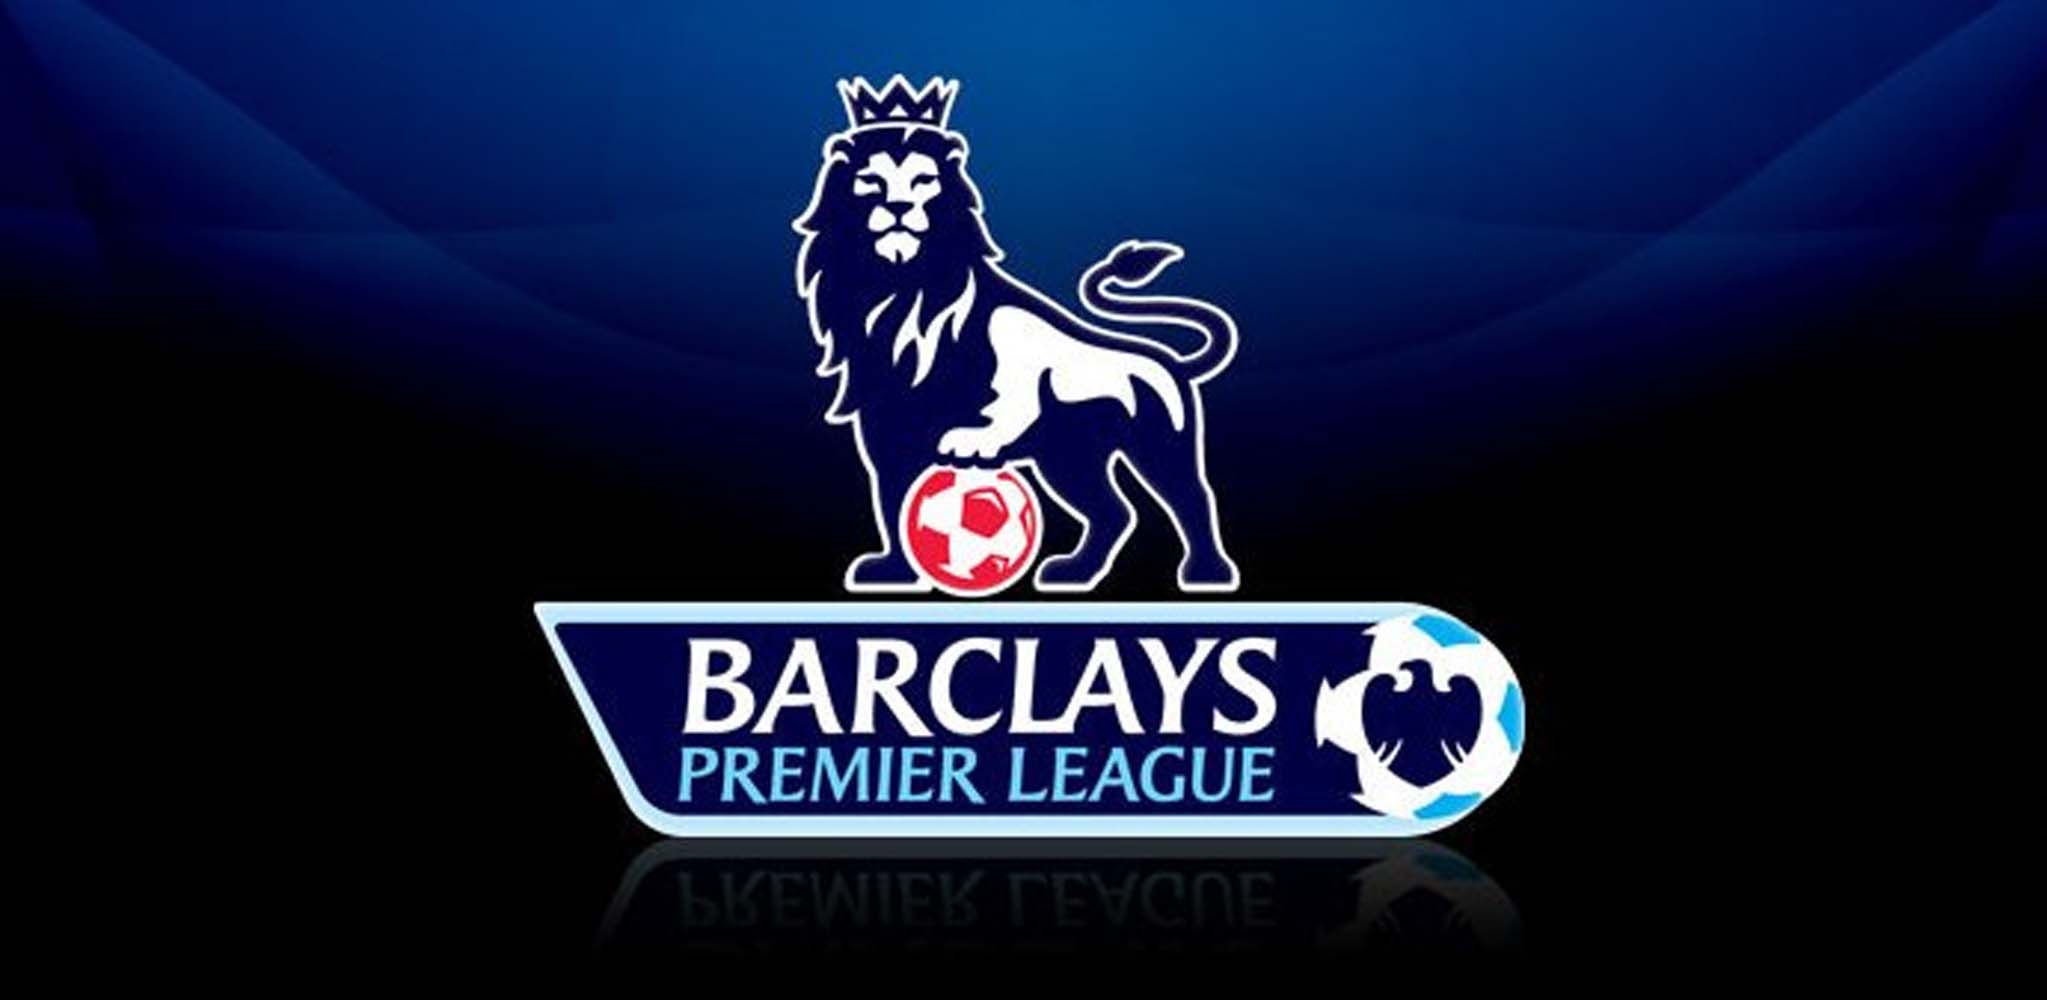 All the latest breaking news on Premier League Browse The Independents complete collection of articles and commentary on Premier League